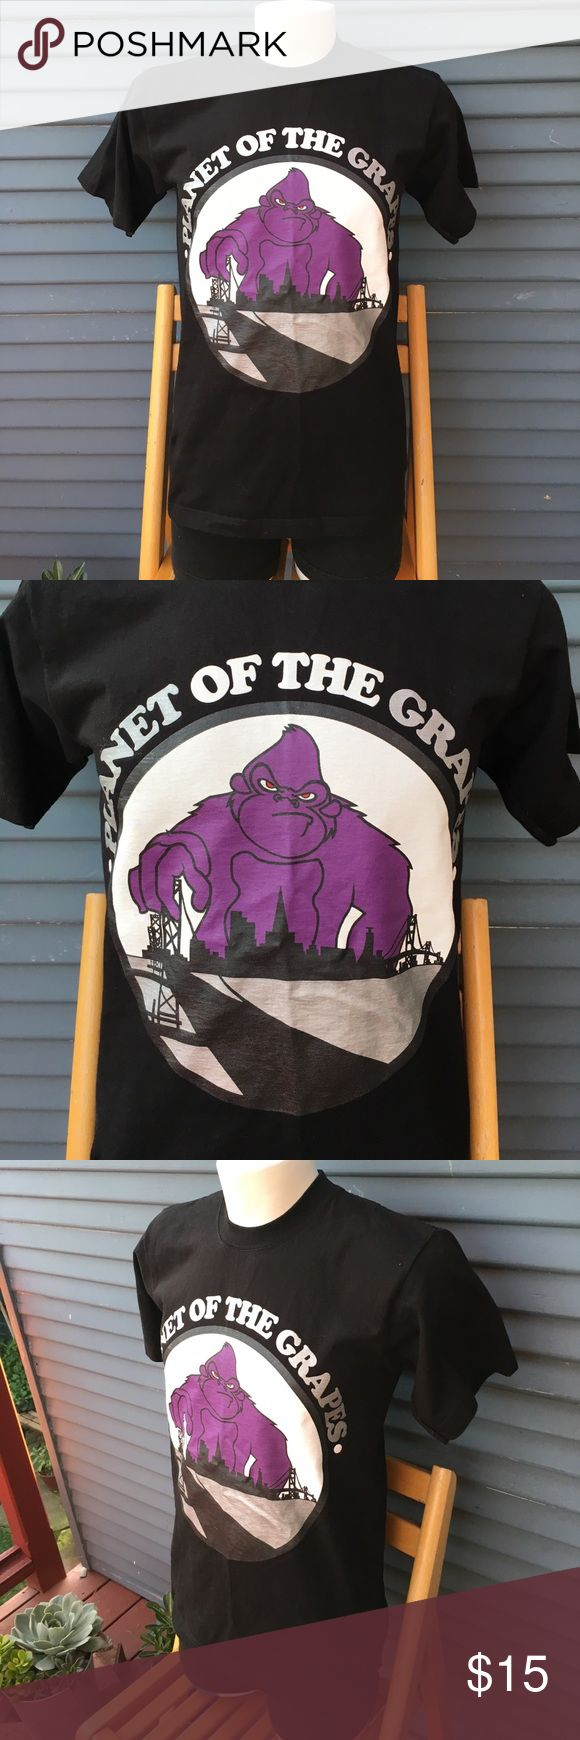 PLANET OF THE GRAPES size medium PLANET OF THE GRAPES size medium Shirts Tees - Short Sleeve